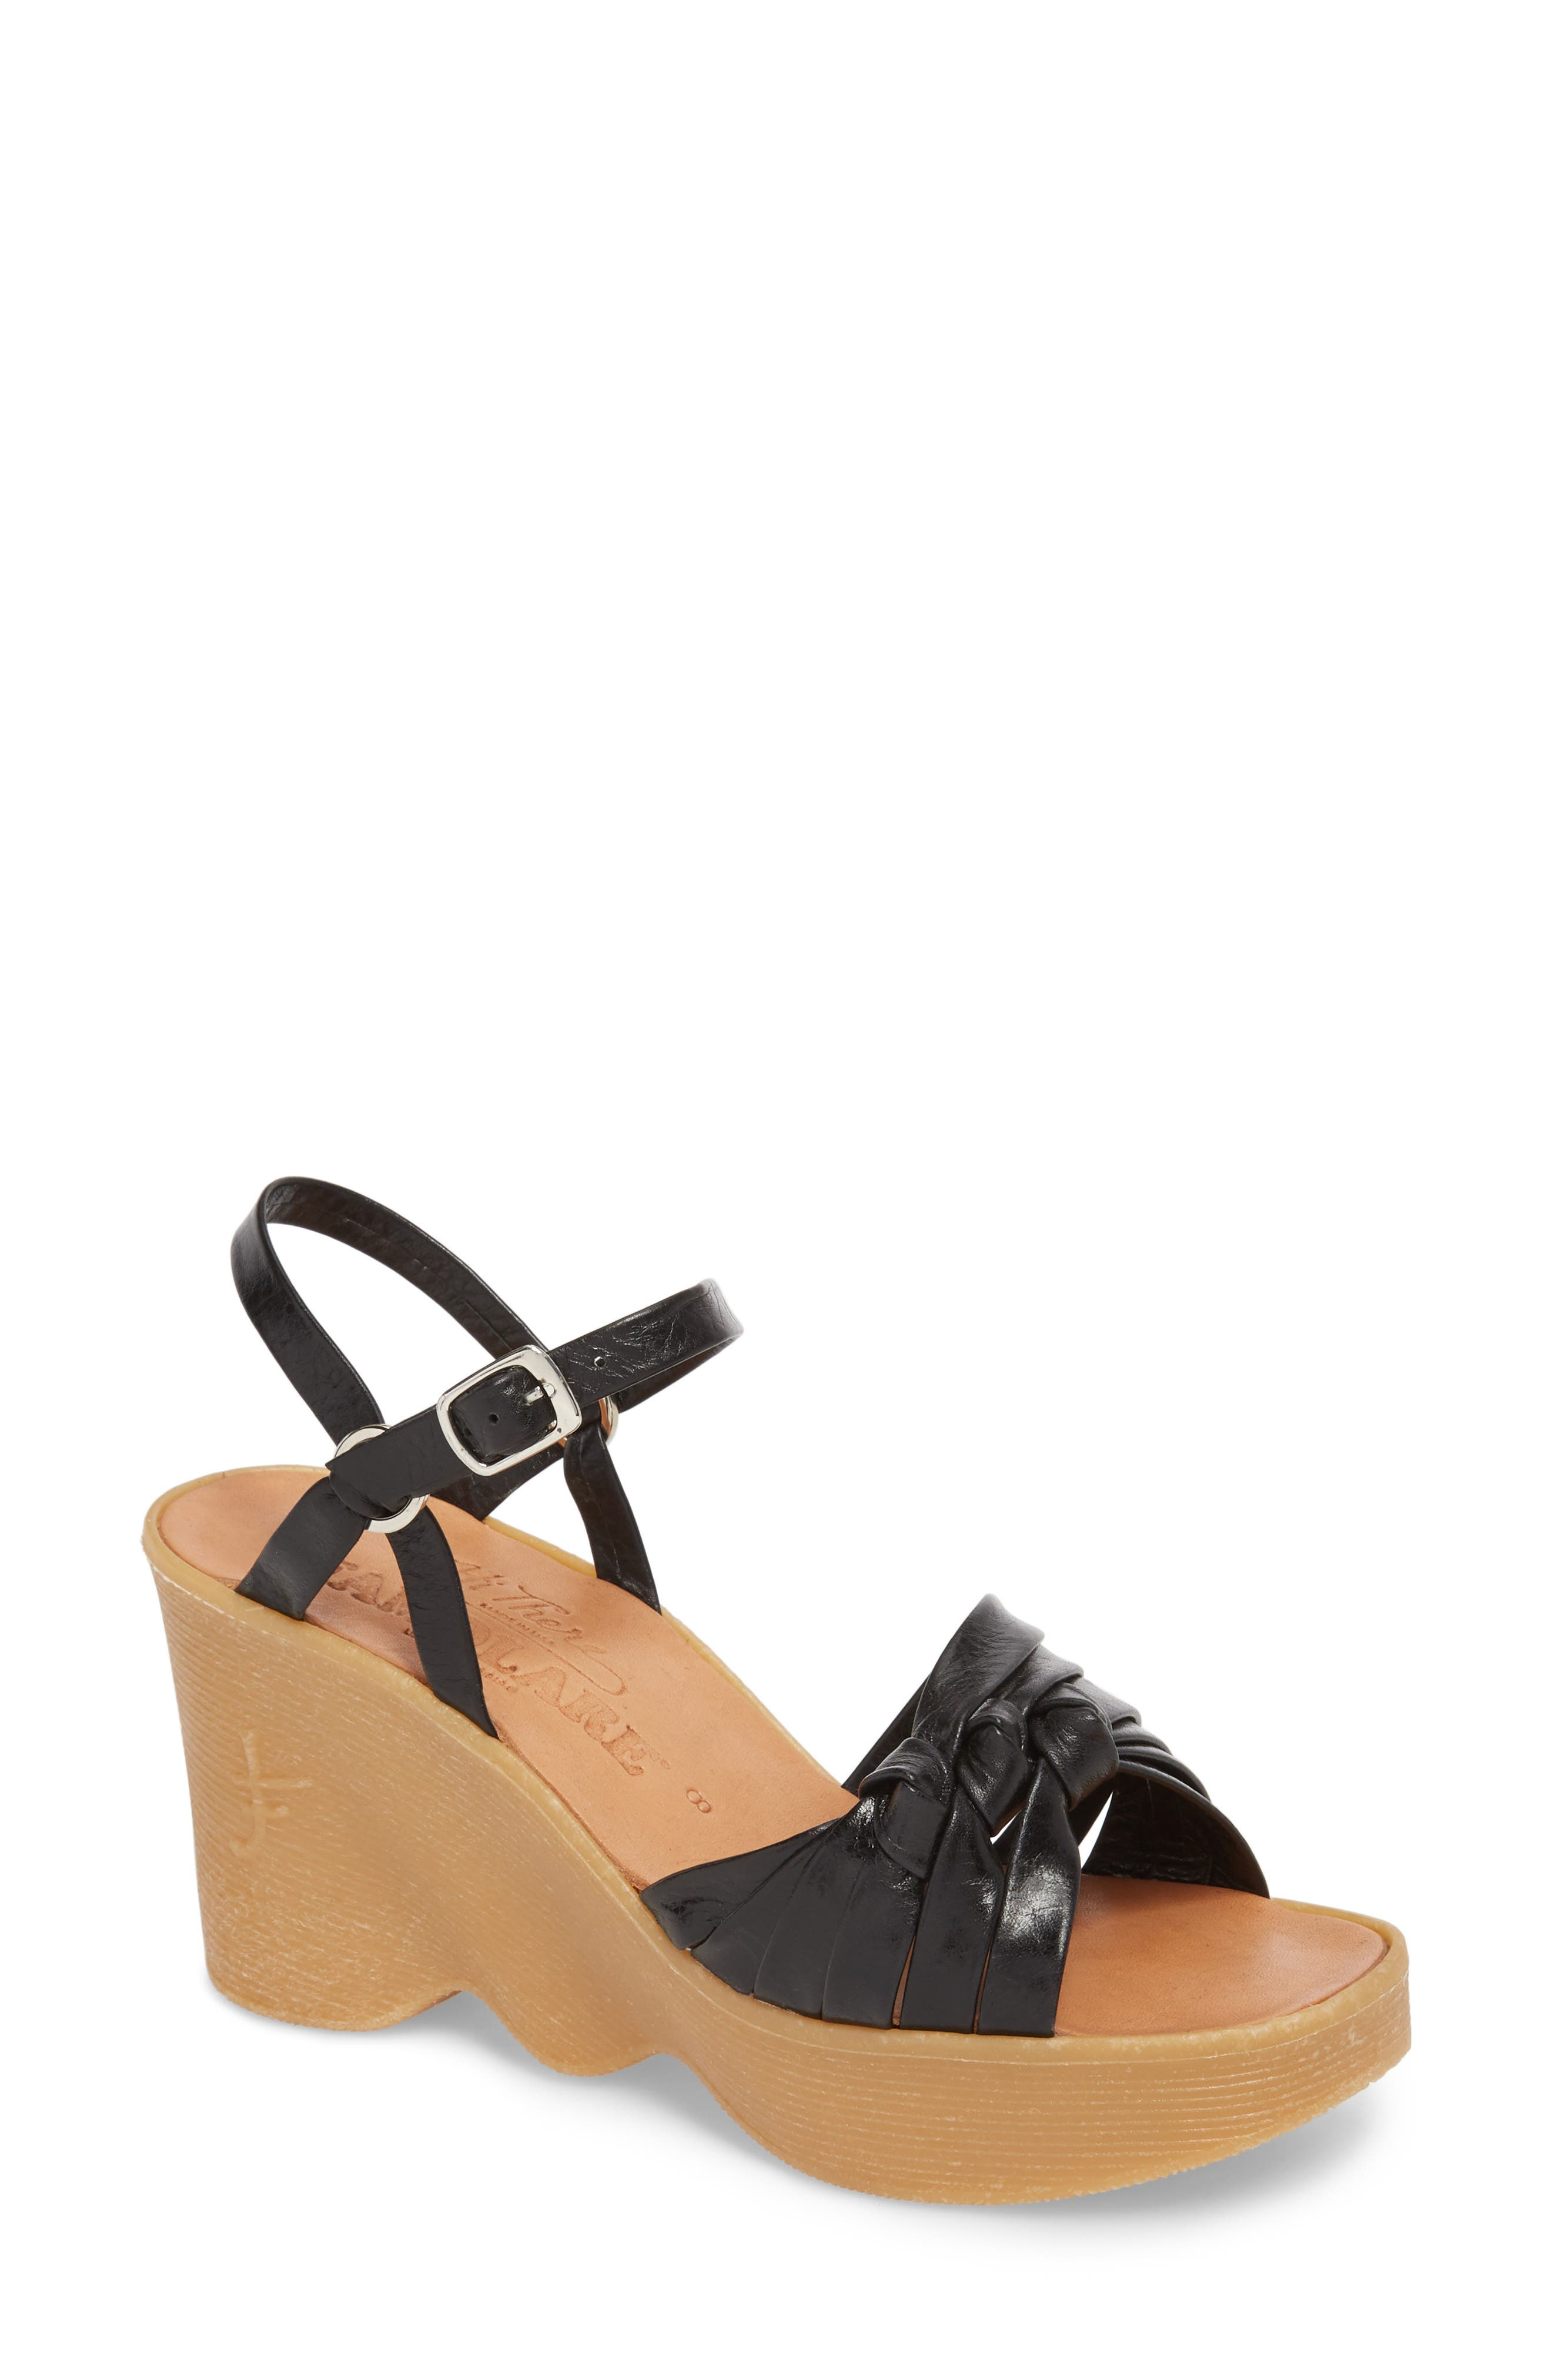 Knot So Fast Wedge Sandal,                             Main thumbnail 1, color,                             COAL LEATHER